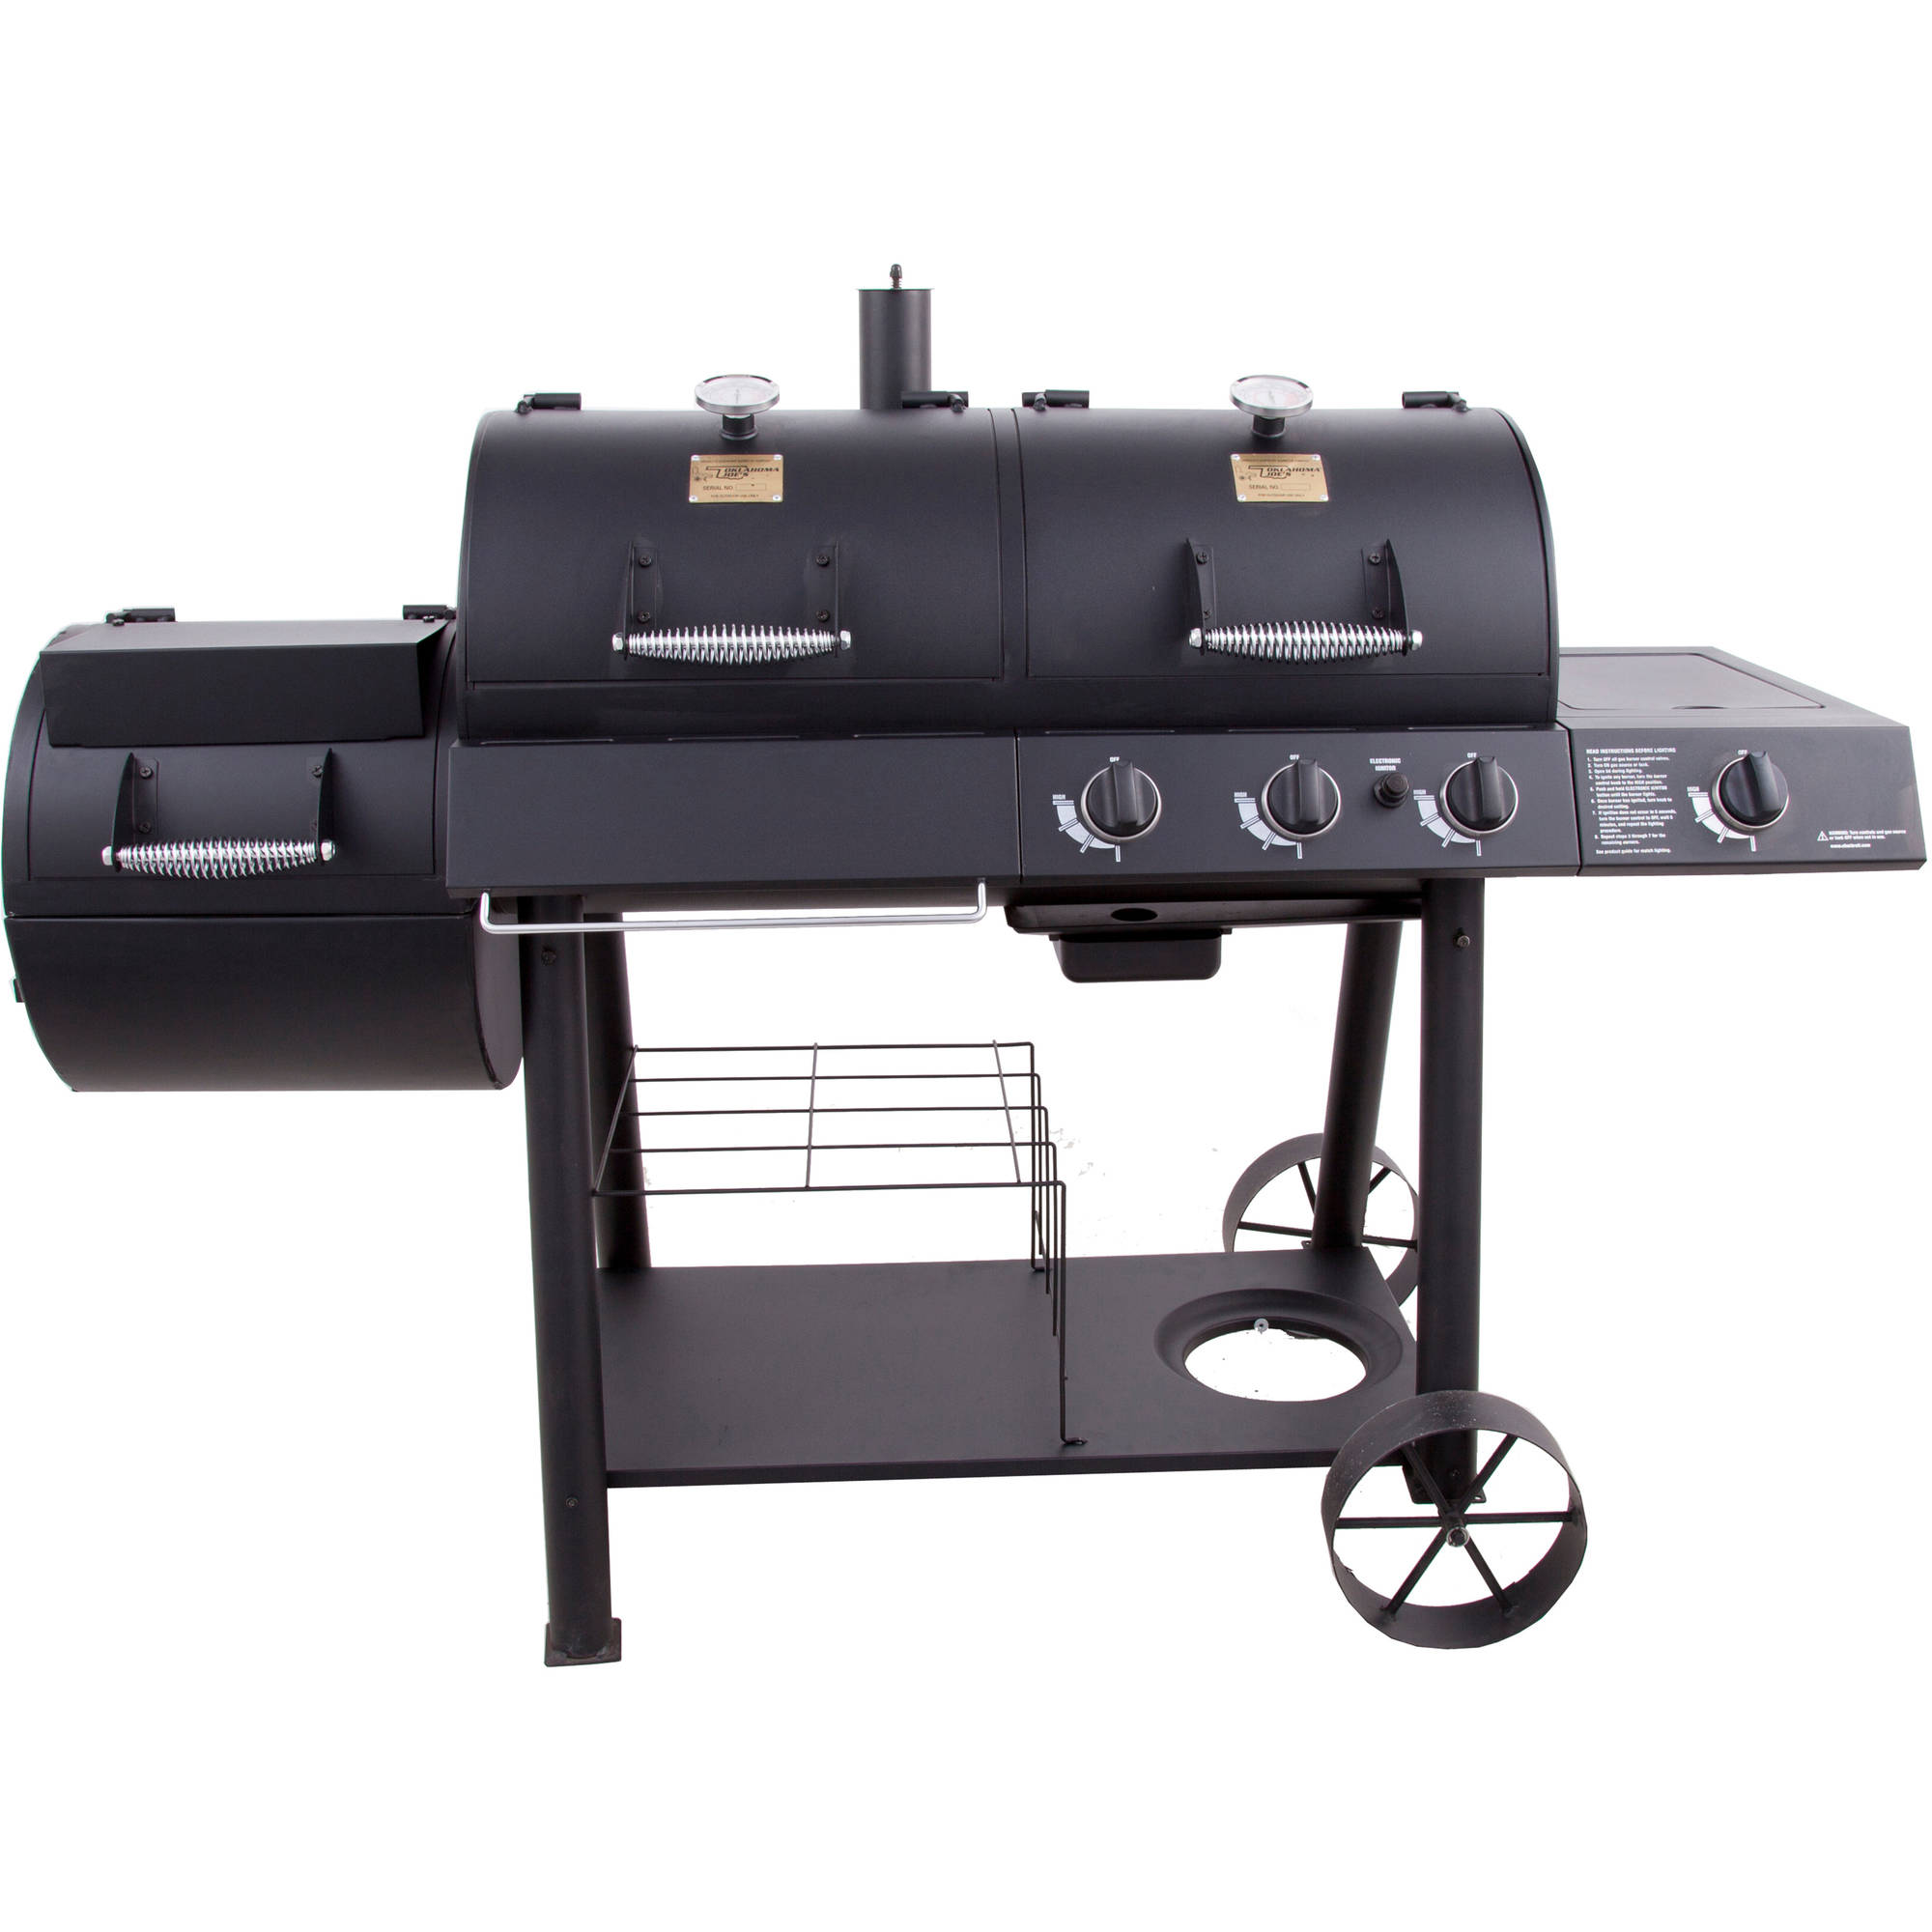 Oklahoma Joe's Charcoal/Gas/Smoker Combo